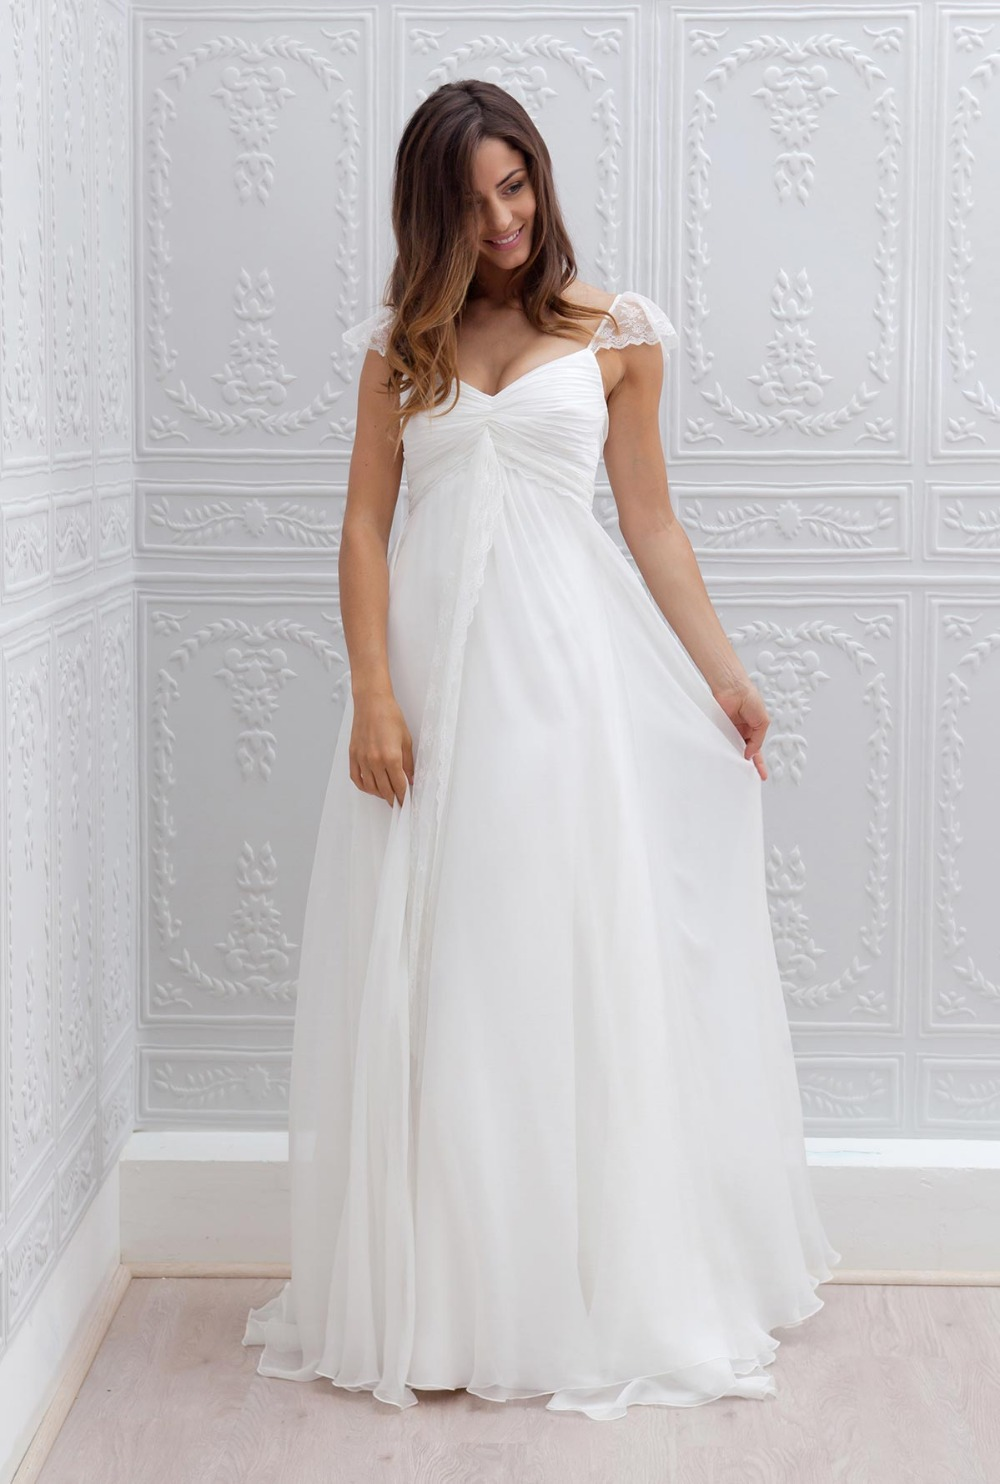 maternity wedding dress with sleeves 2016 new cheap cap sleeves lace chiffon a line empire 5755